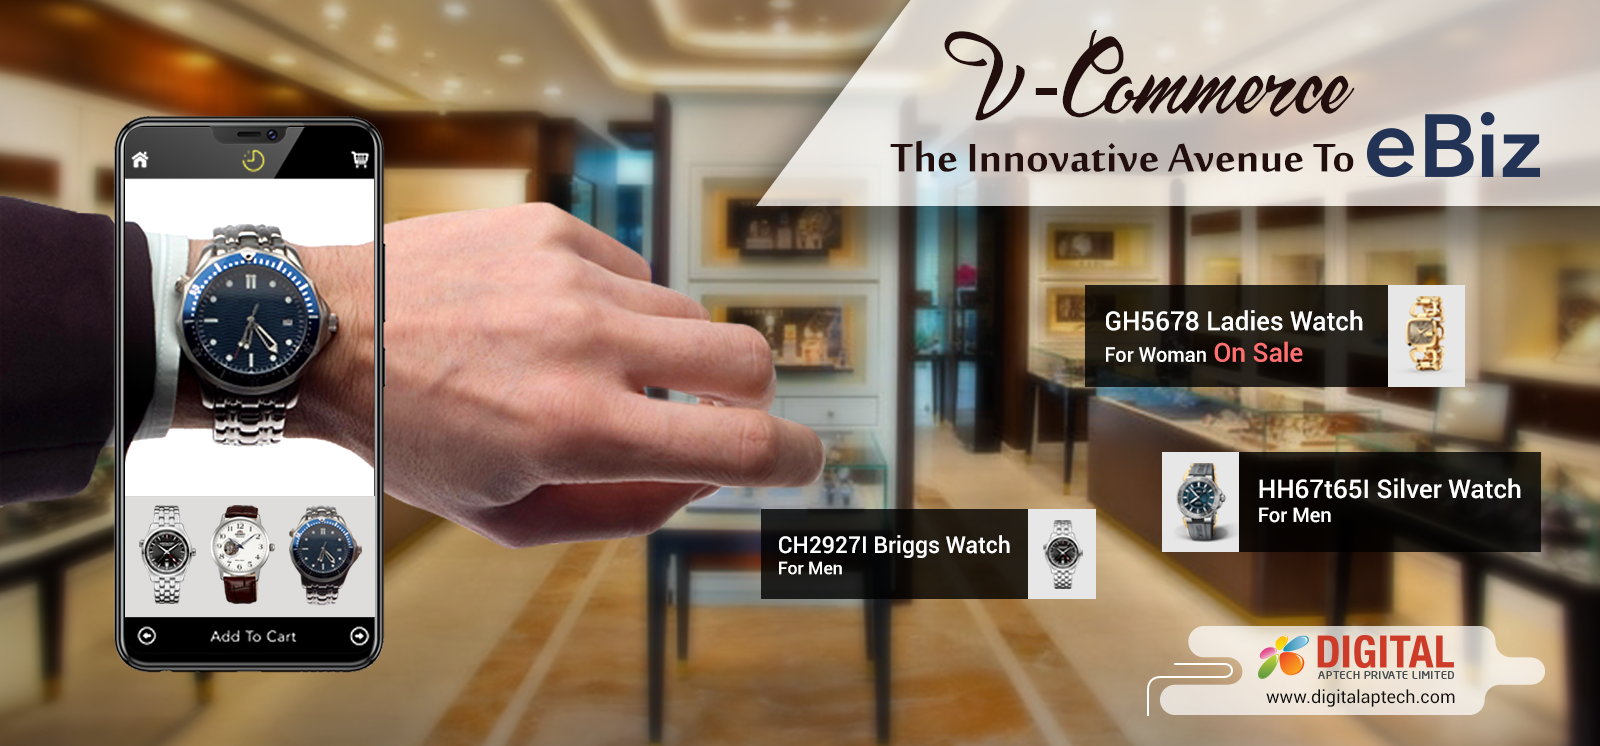 Virtual Reality and Augmented Reality – the New V-Commerce Tools